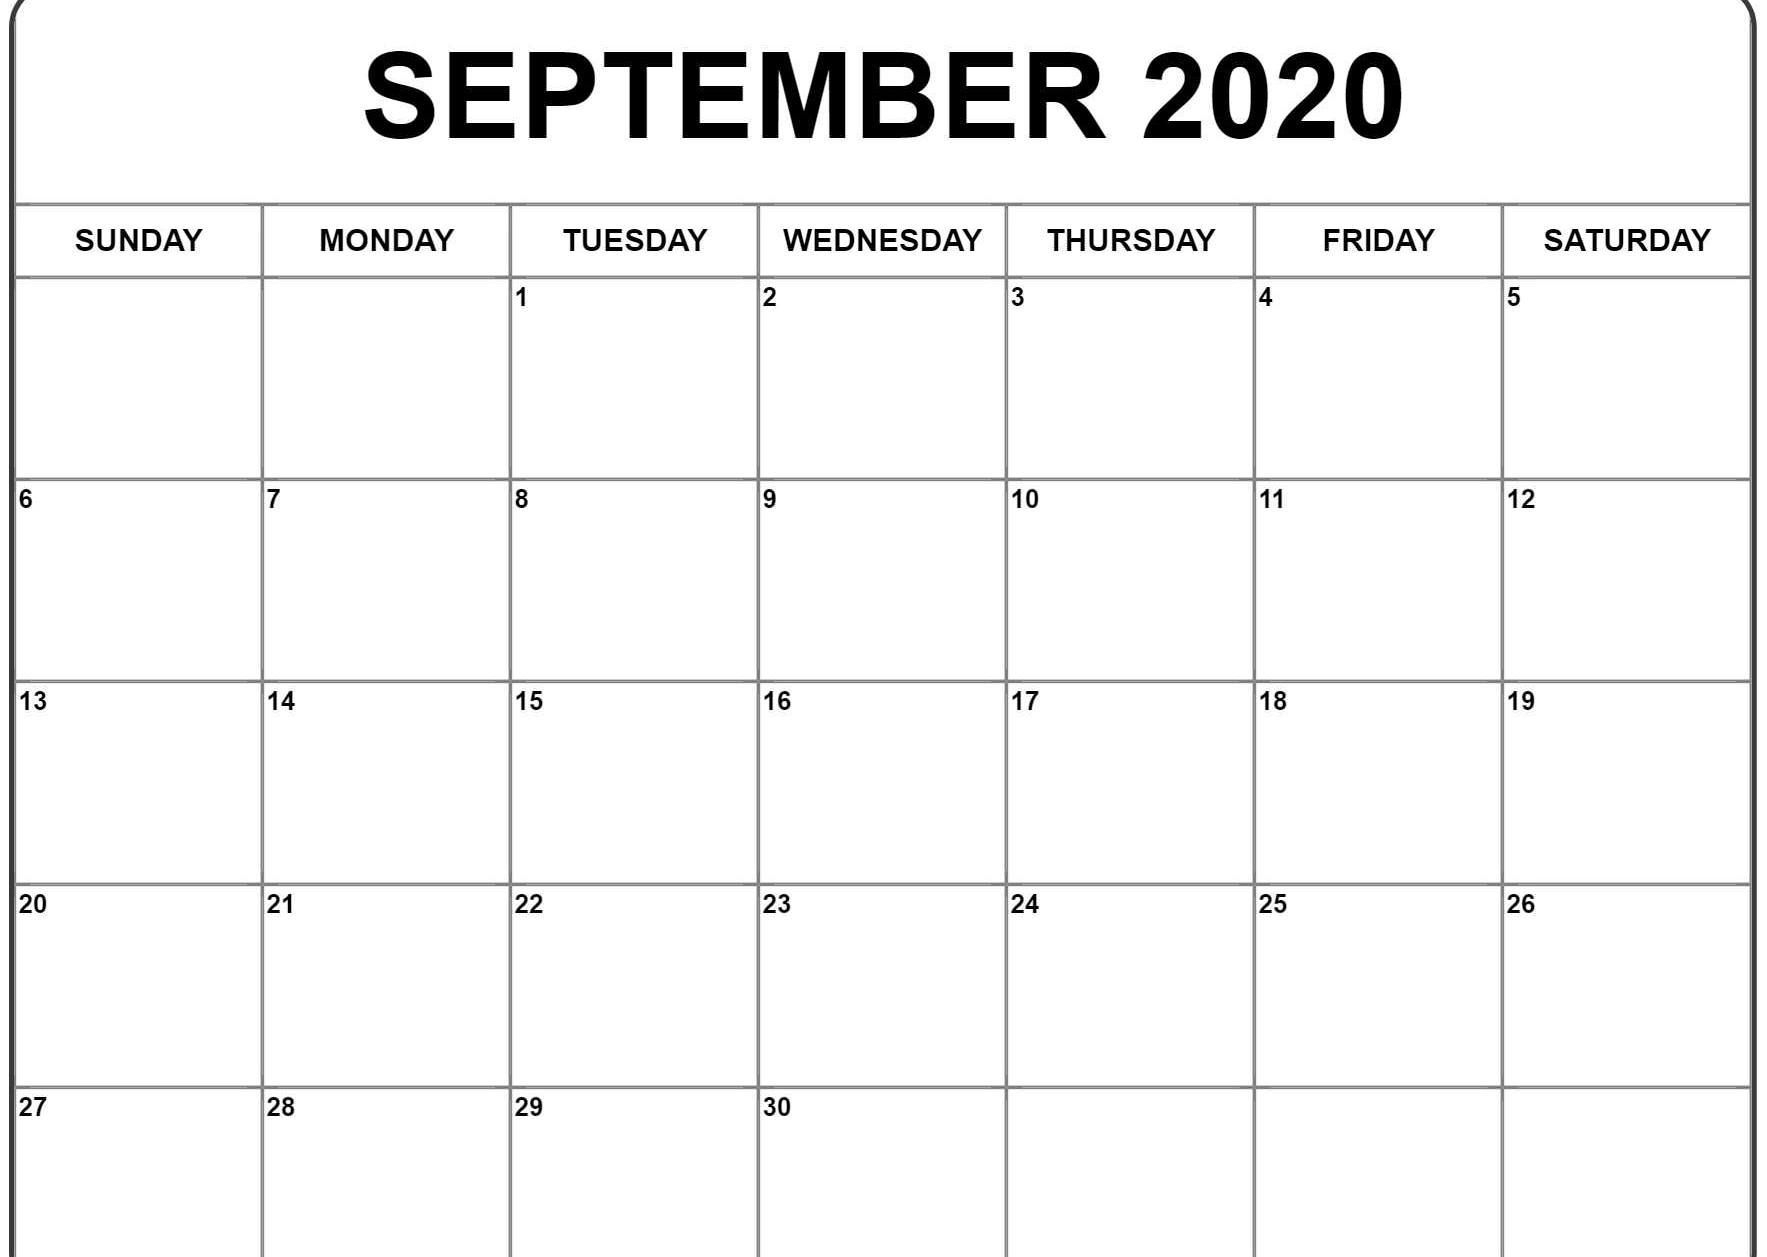 September 2020 Calendar | Calendar Template, Printable